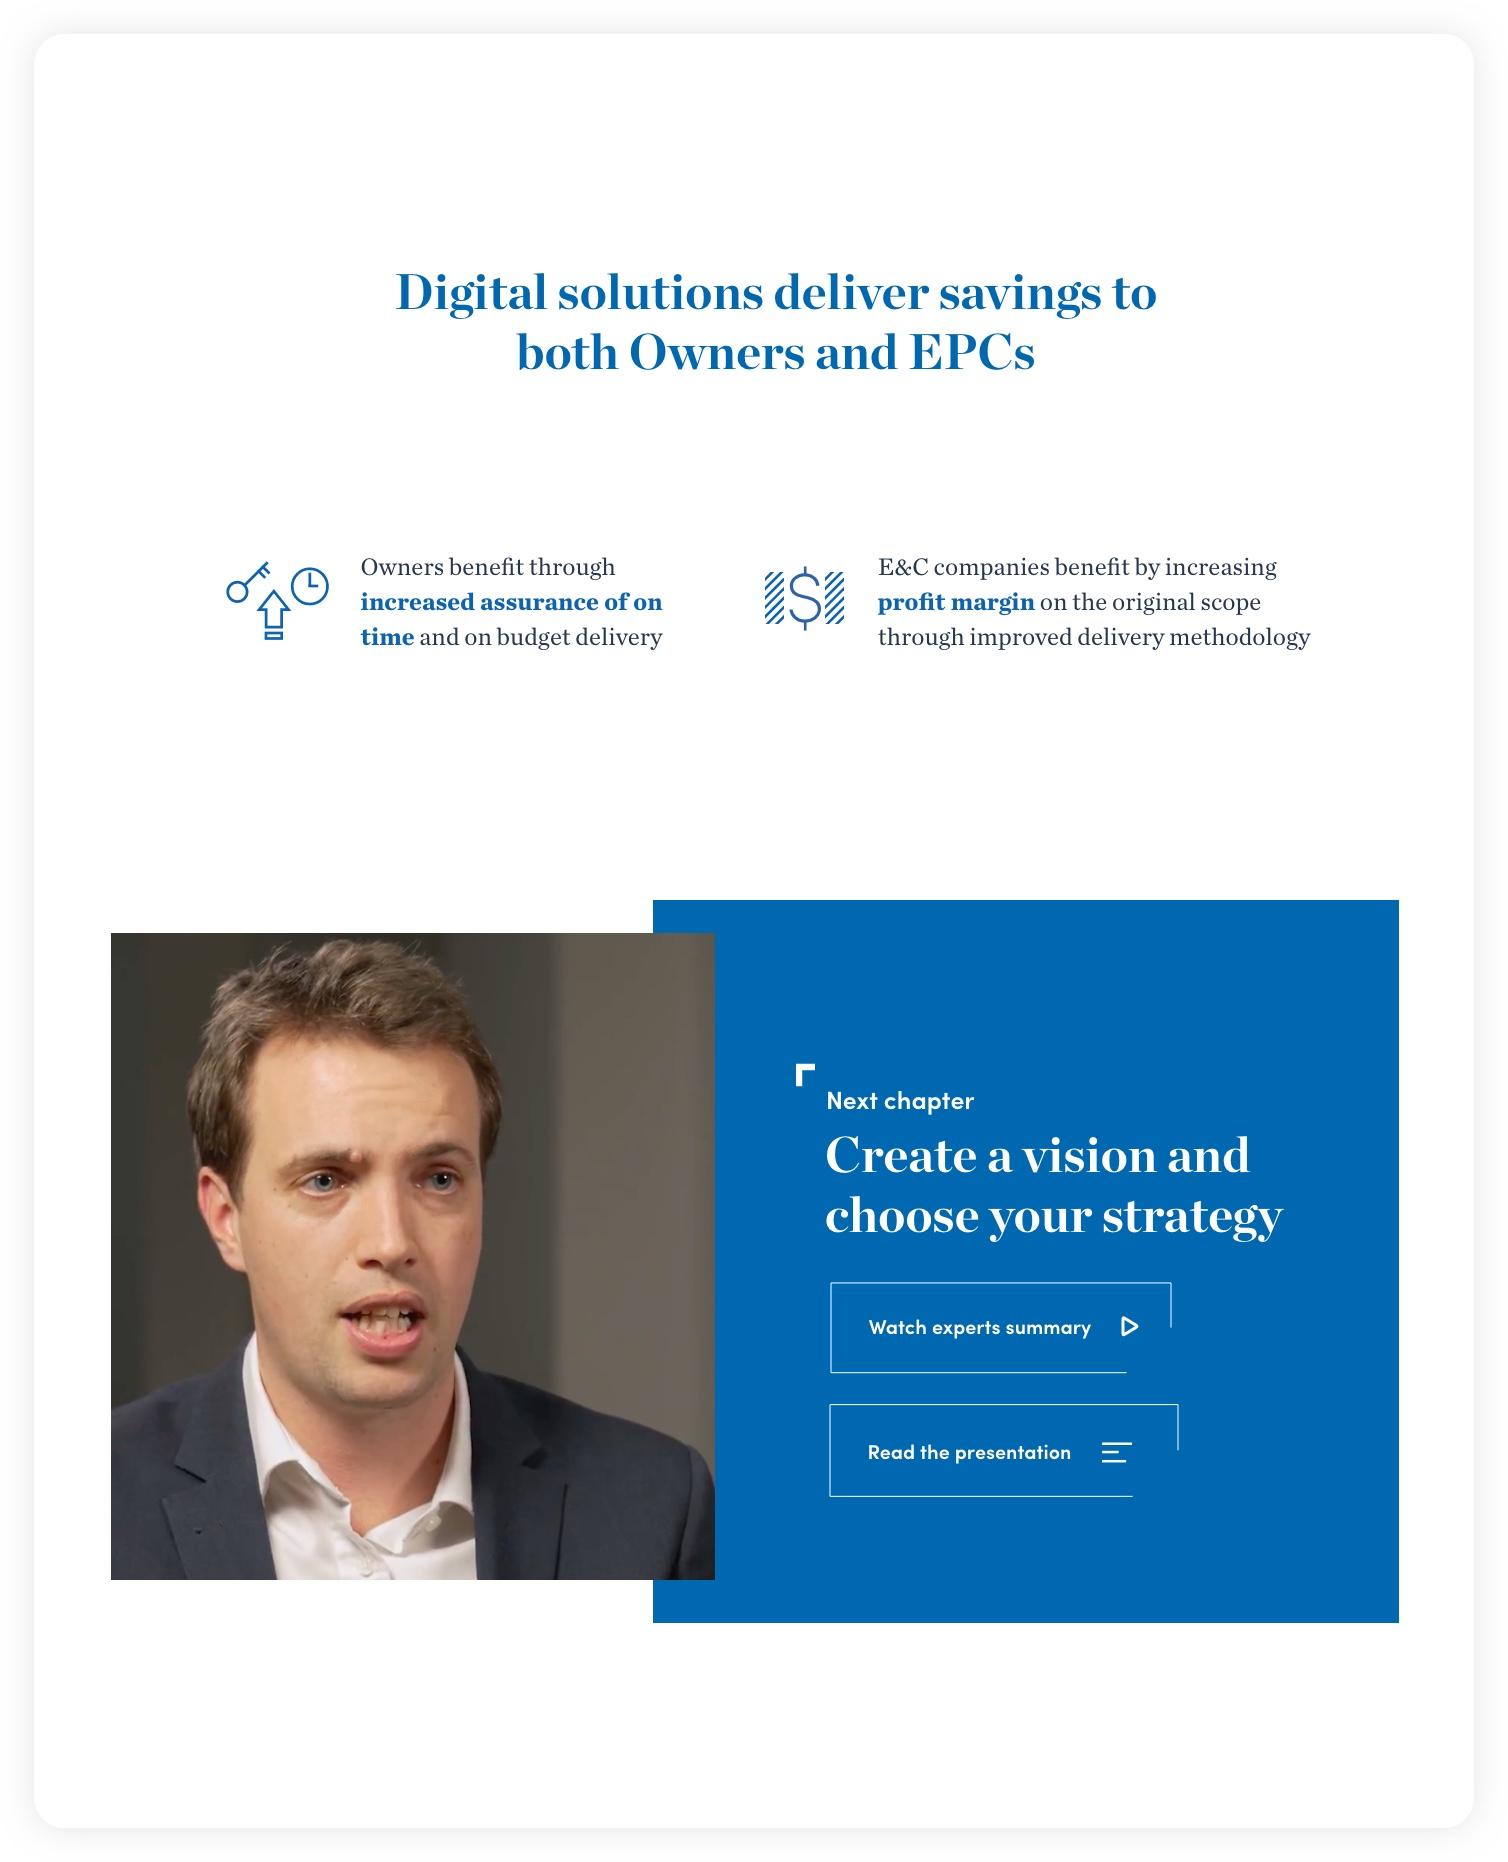 Digital solutions section – McKinsey C&E experience website: Navigating complexity